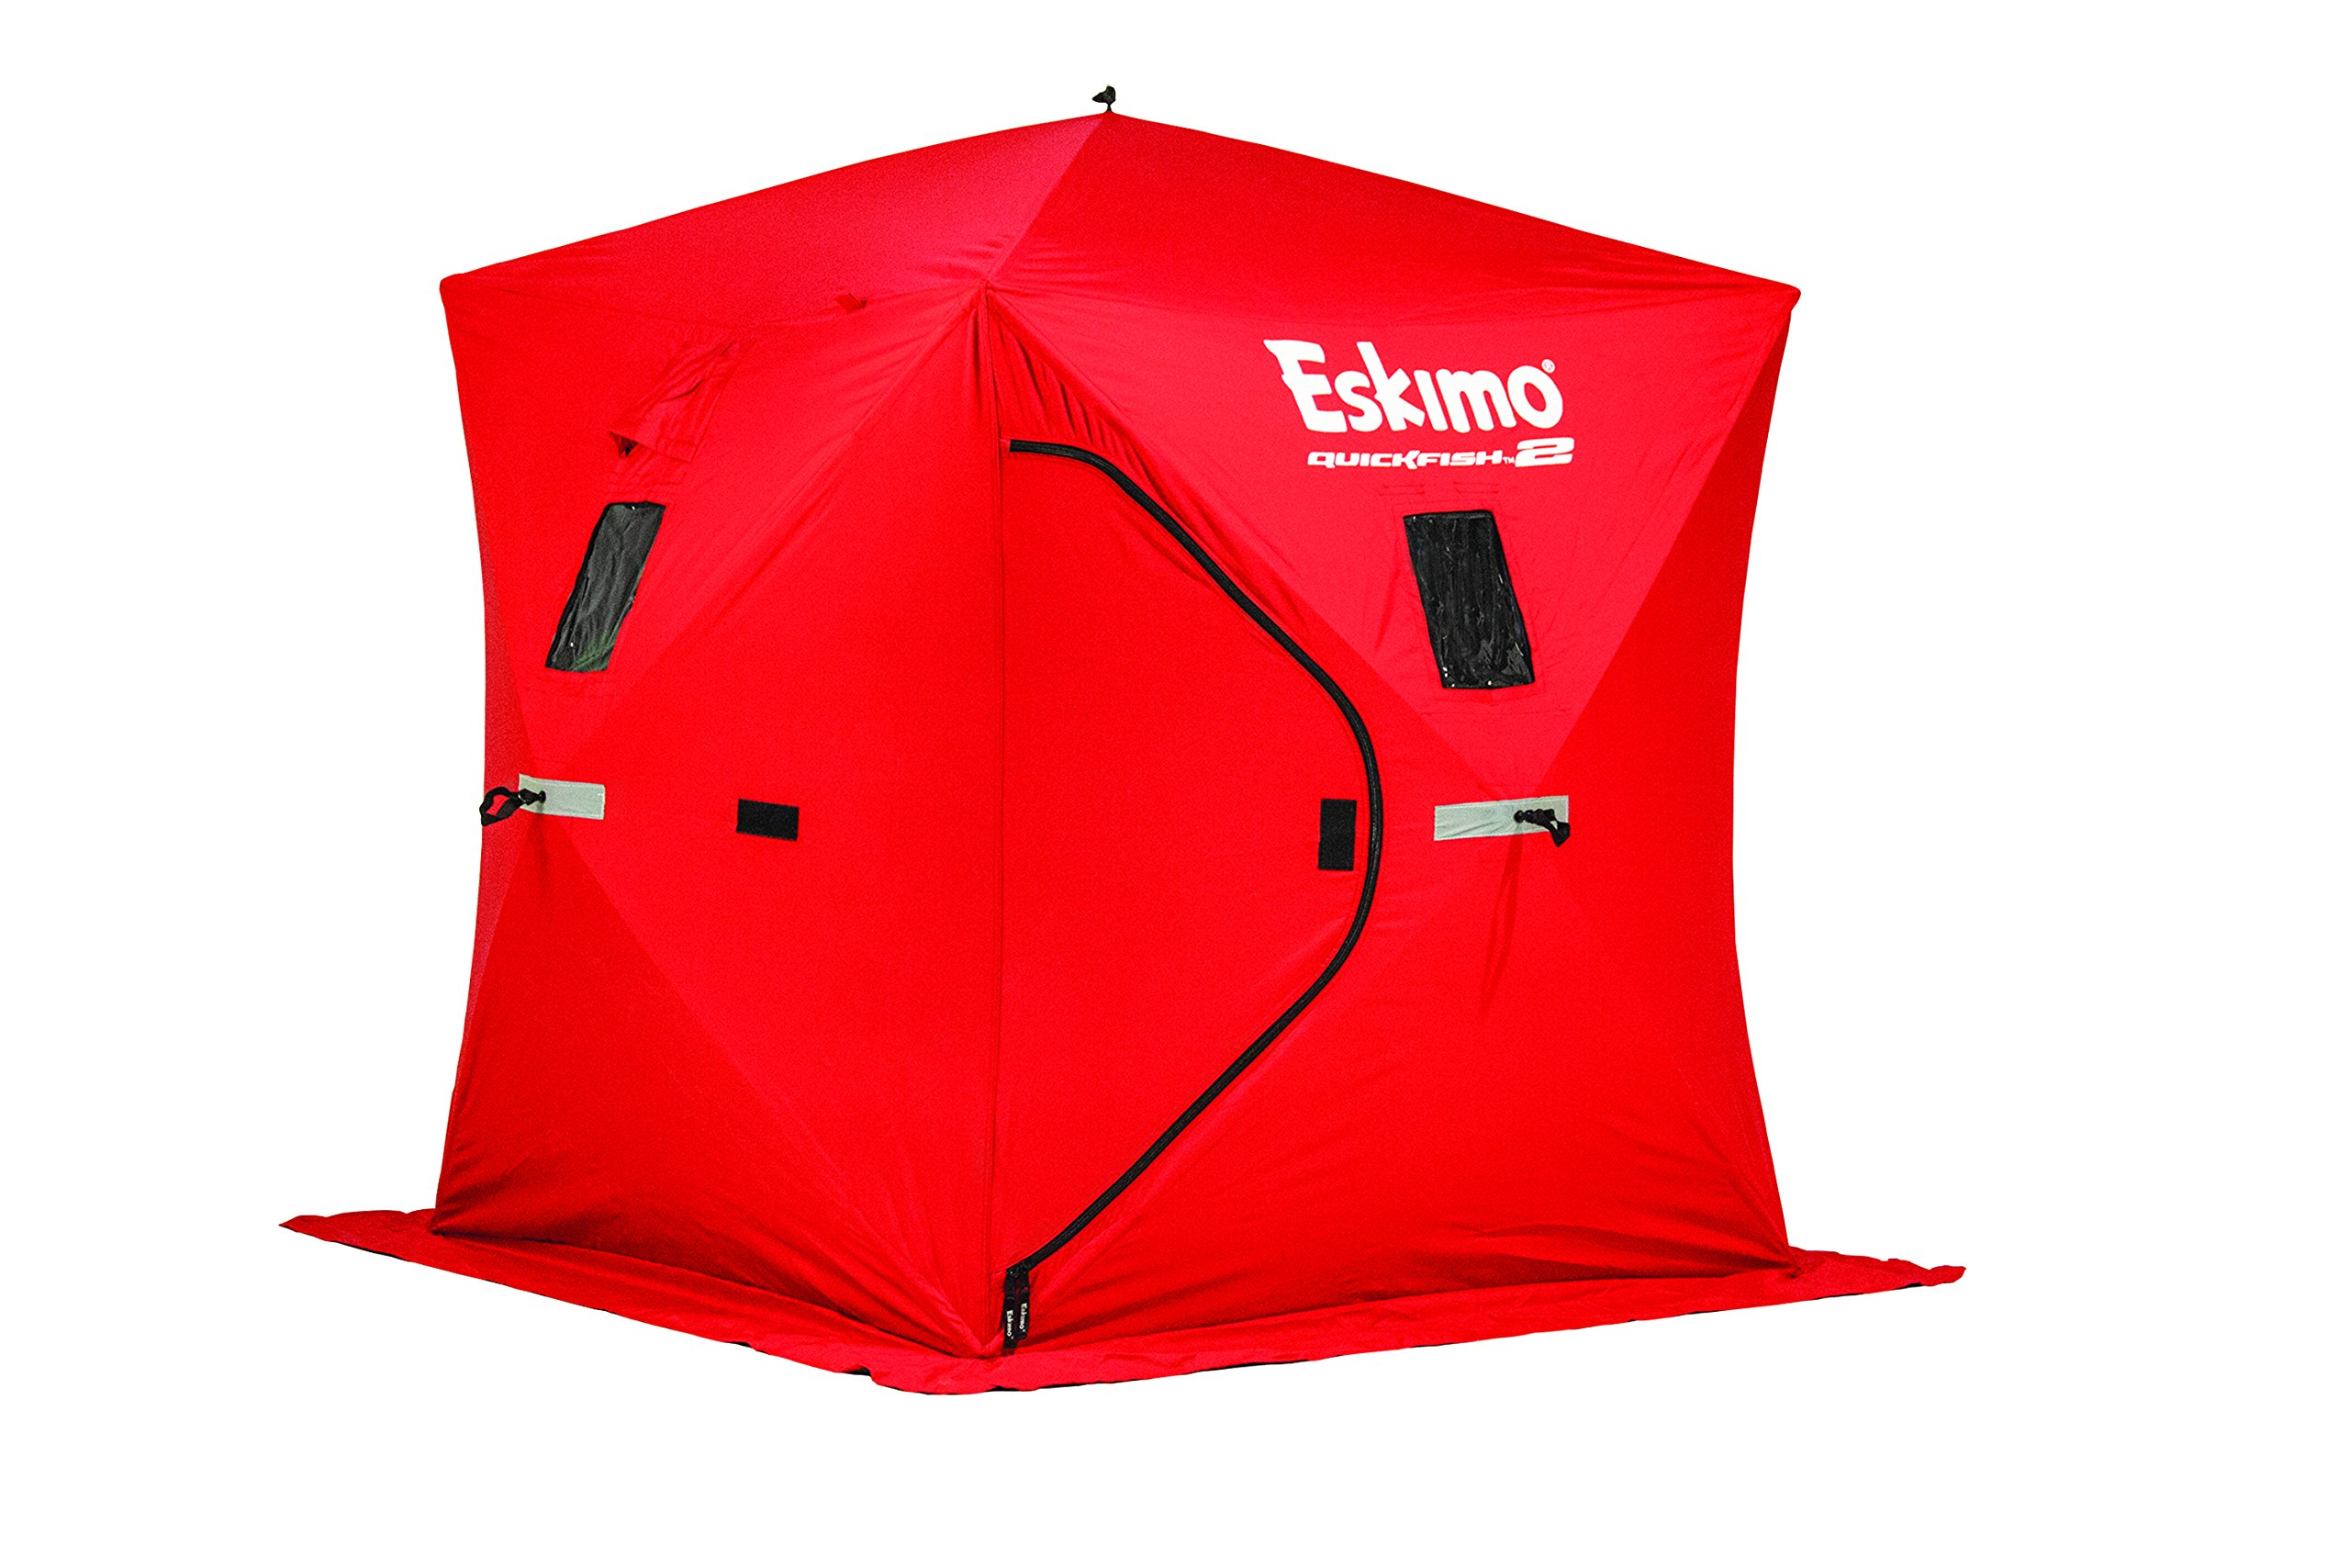 Eskimo 69151 Quickfish 2 Pop-up Portable Ice Shelter, 2 person by Eskimo